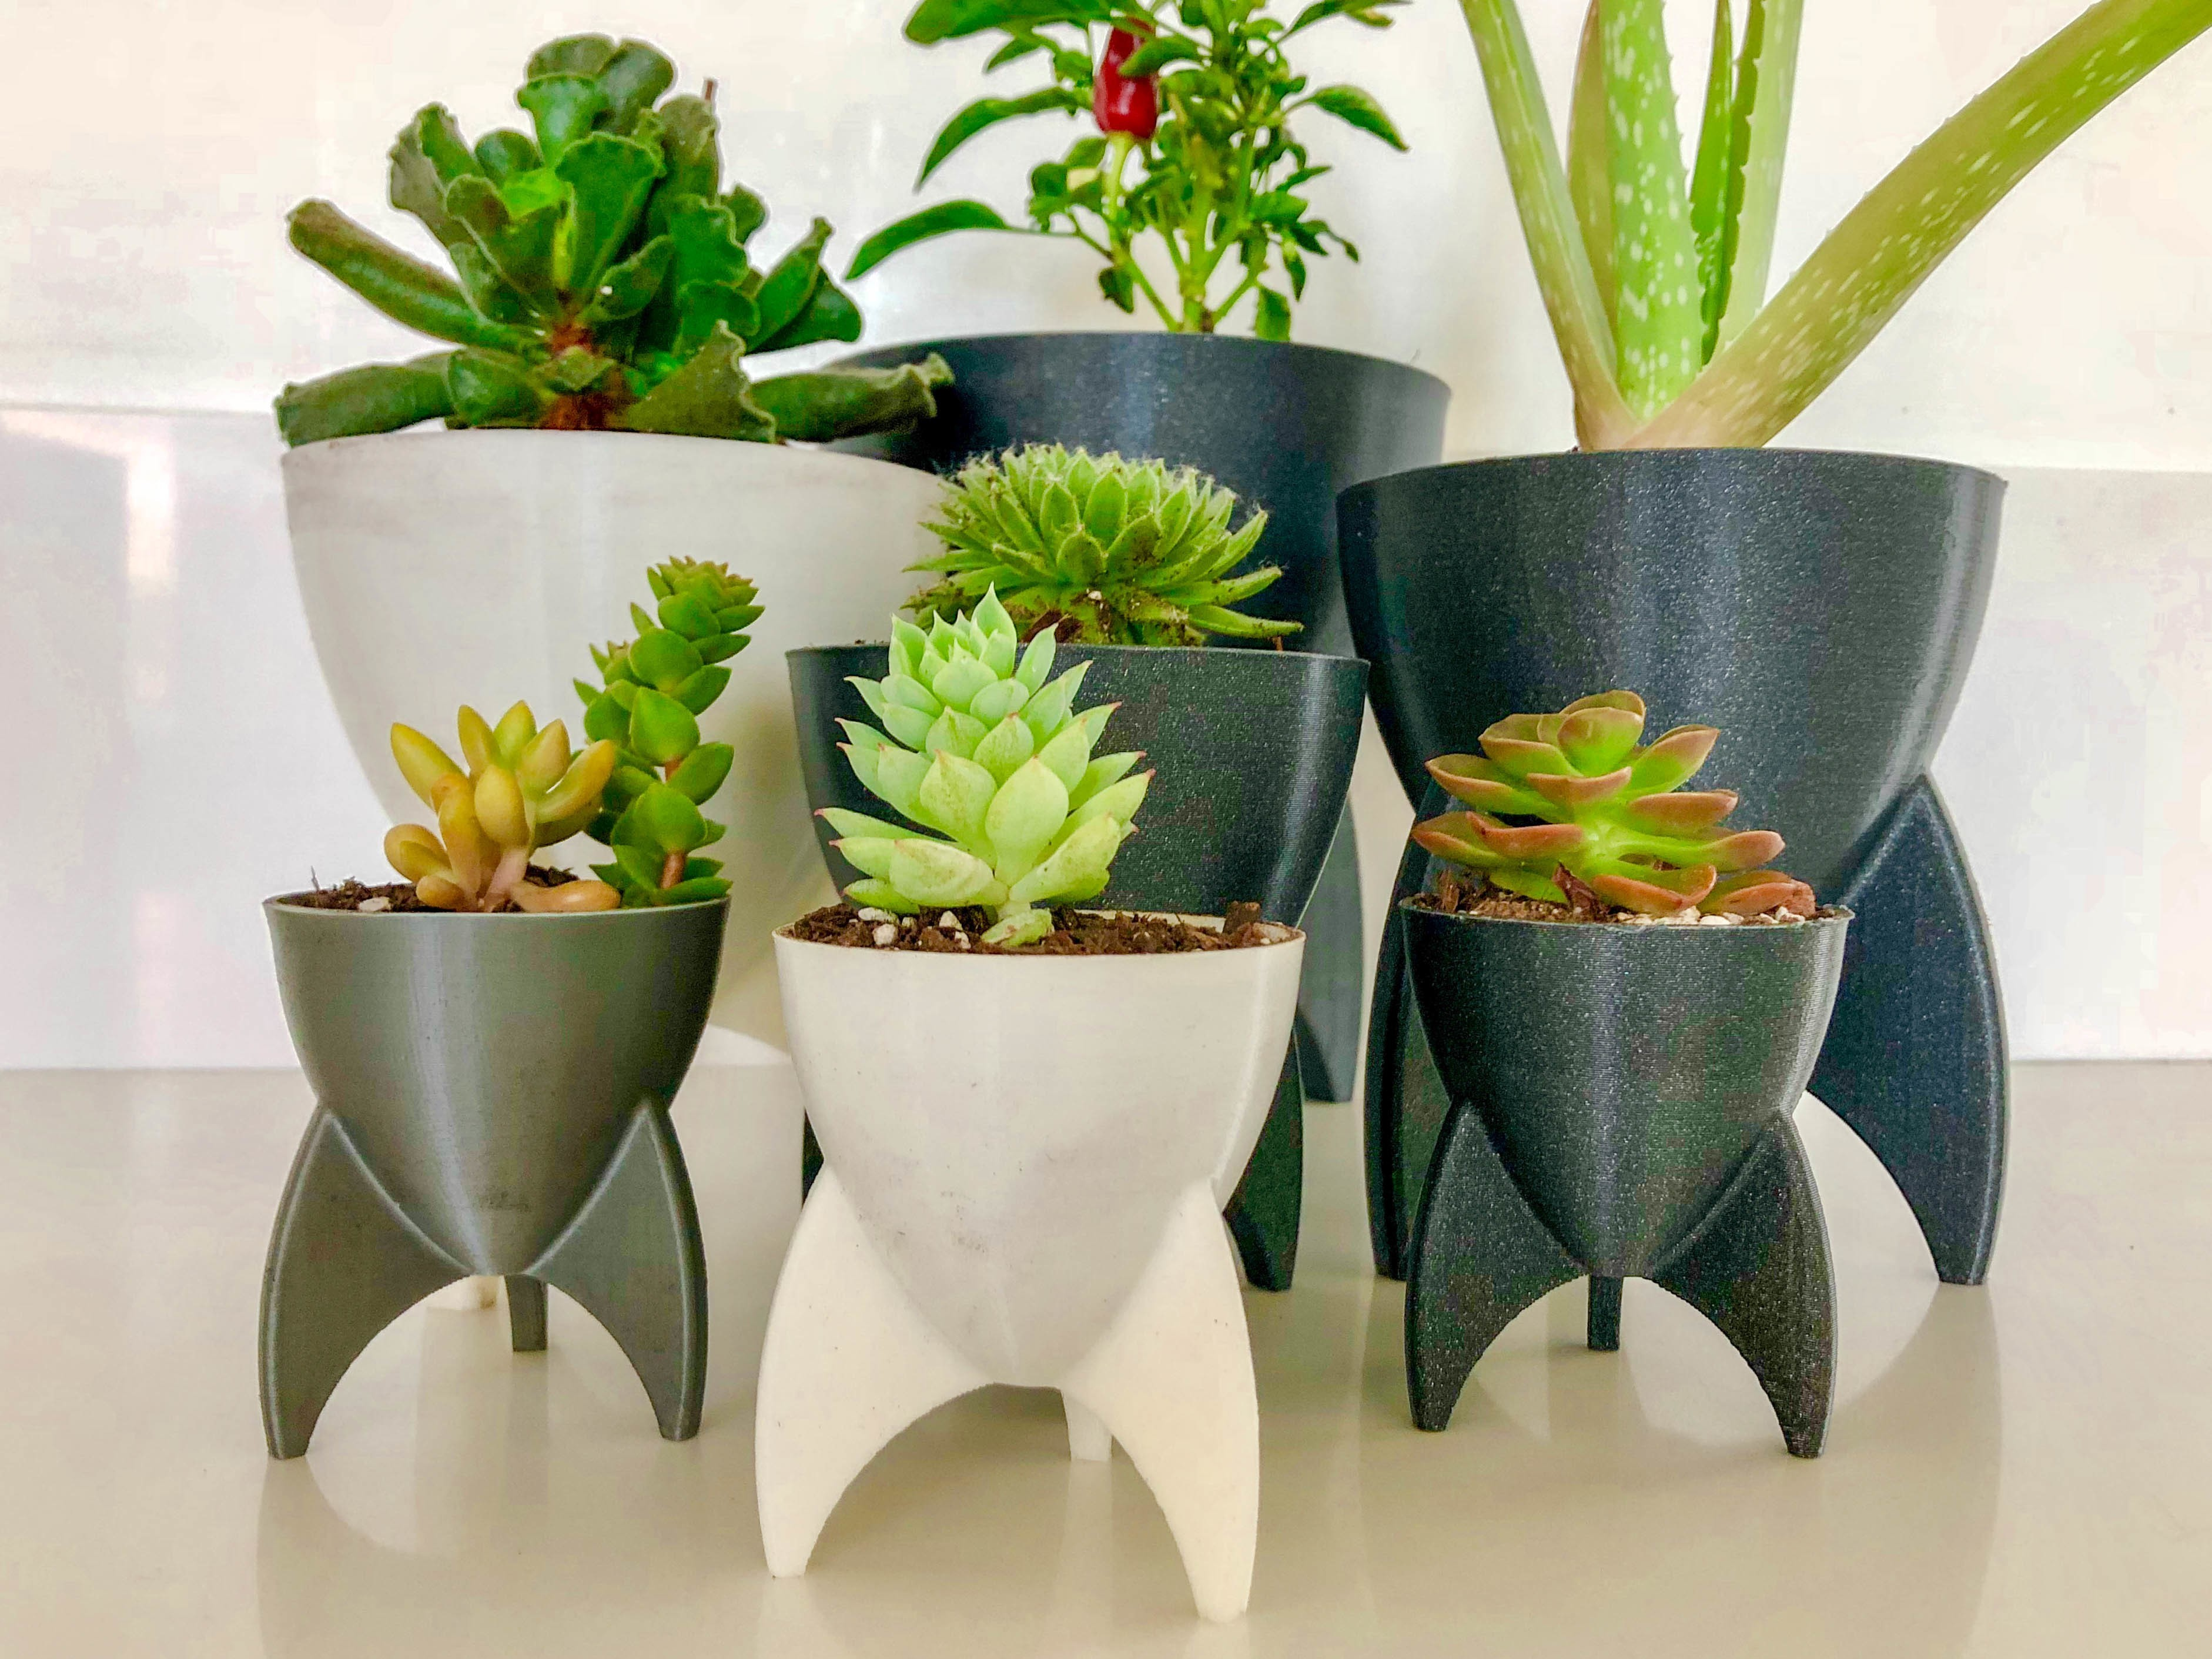 rocketplanters.jpg Download free STL file Retro Rocket Planter / Pencil Cup • 3D printing template, printfutura